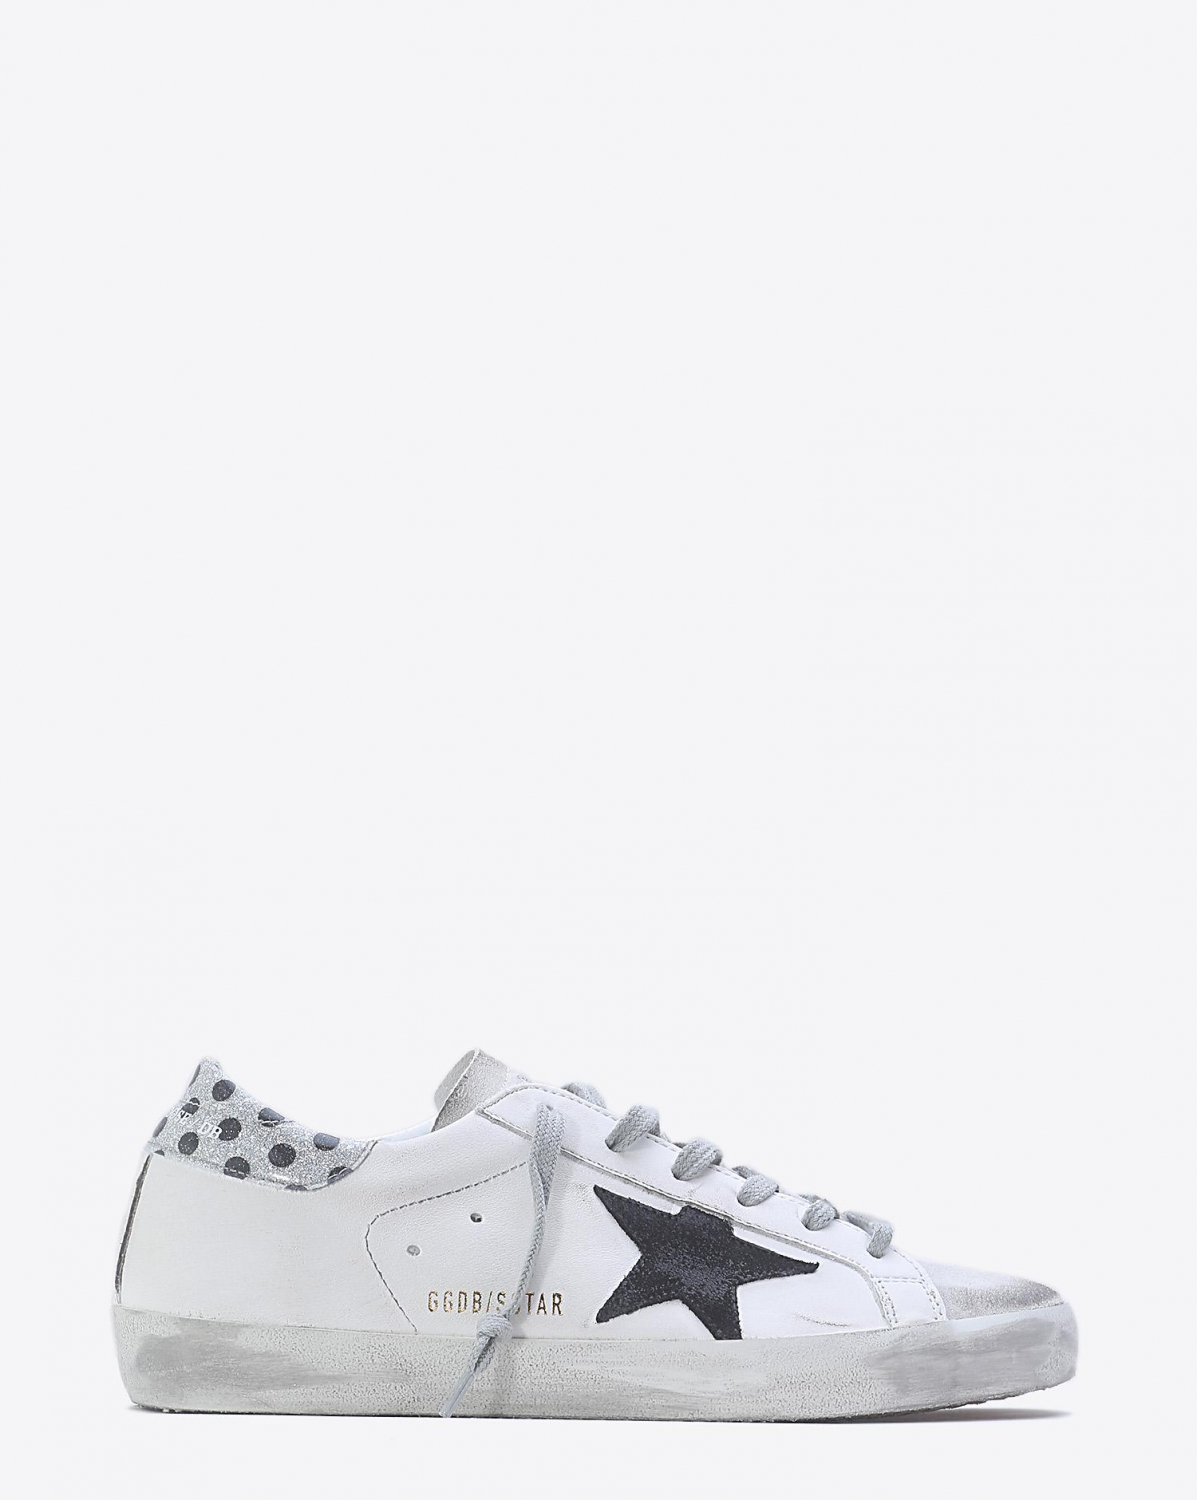 Golden Goose Woman Pré-Collection Sneakers Superstar - White Silver Glitter Black Pois